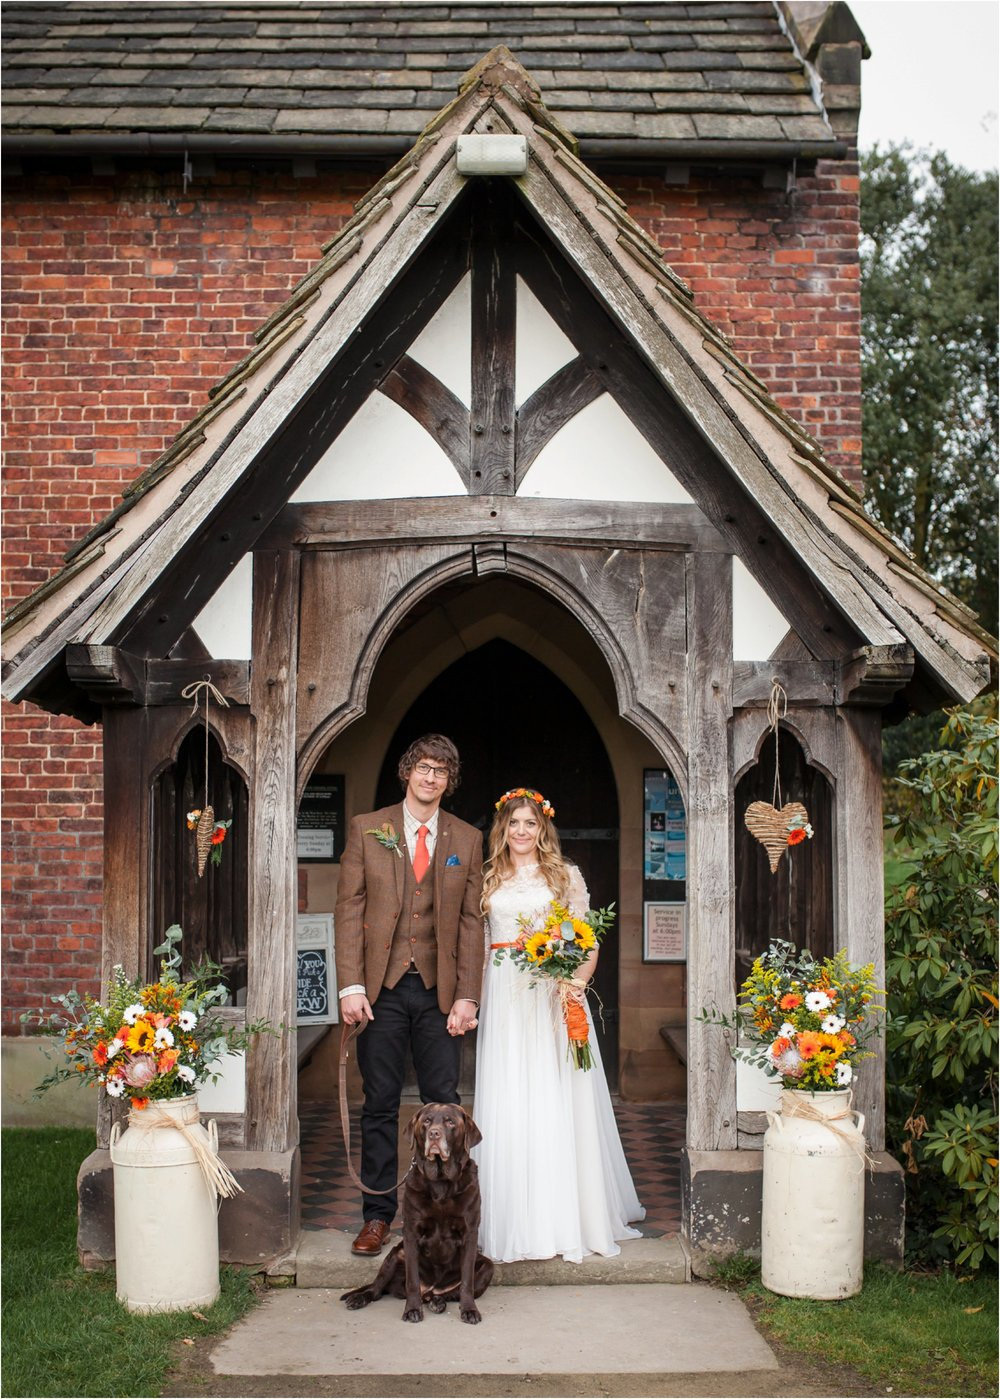 Styal_Wedding_Wilmslow_Cheshire_Autumn_Colourful_photography_0092.jpg